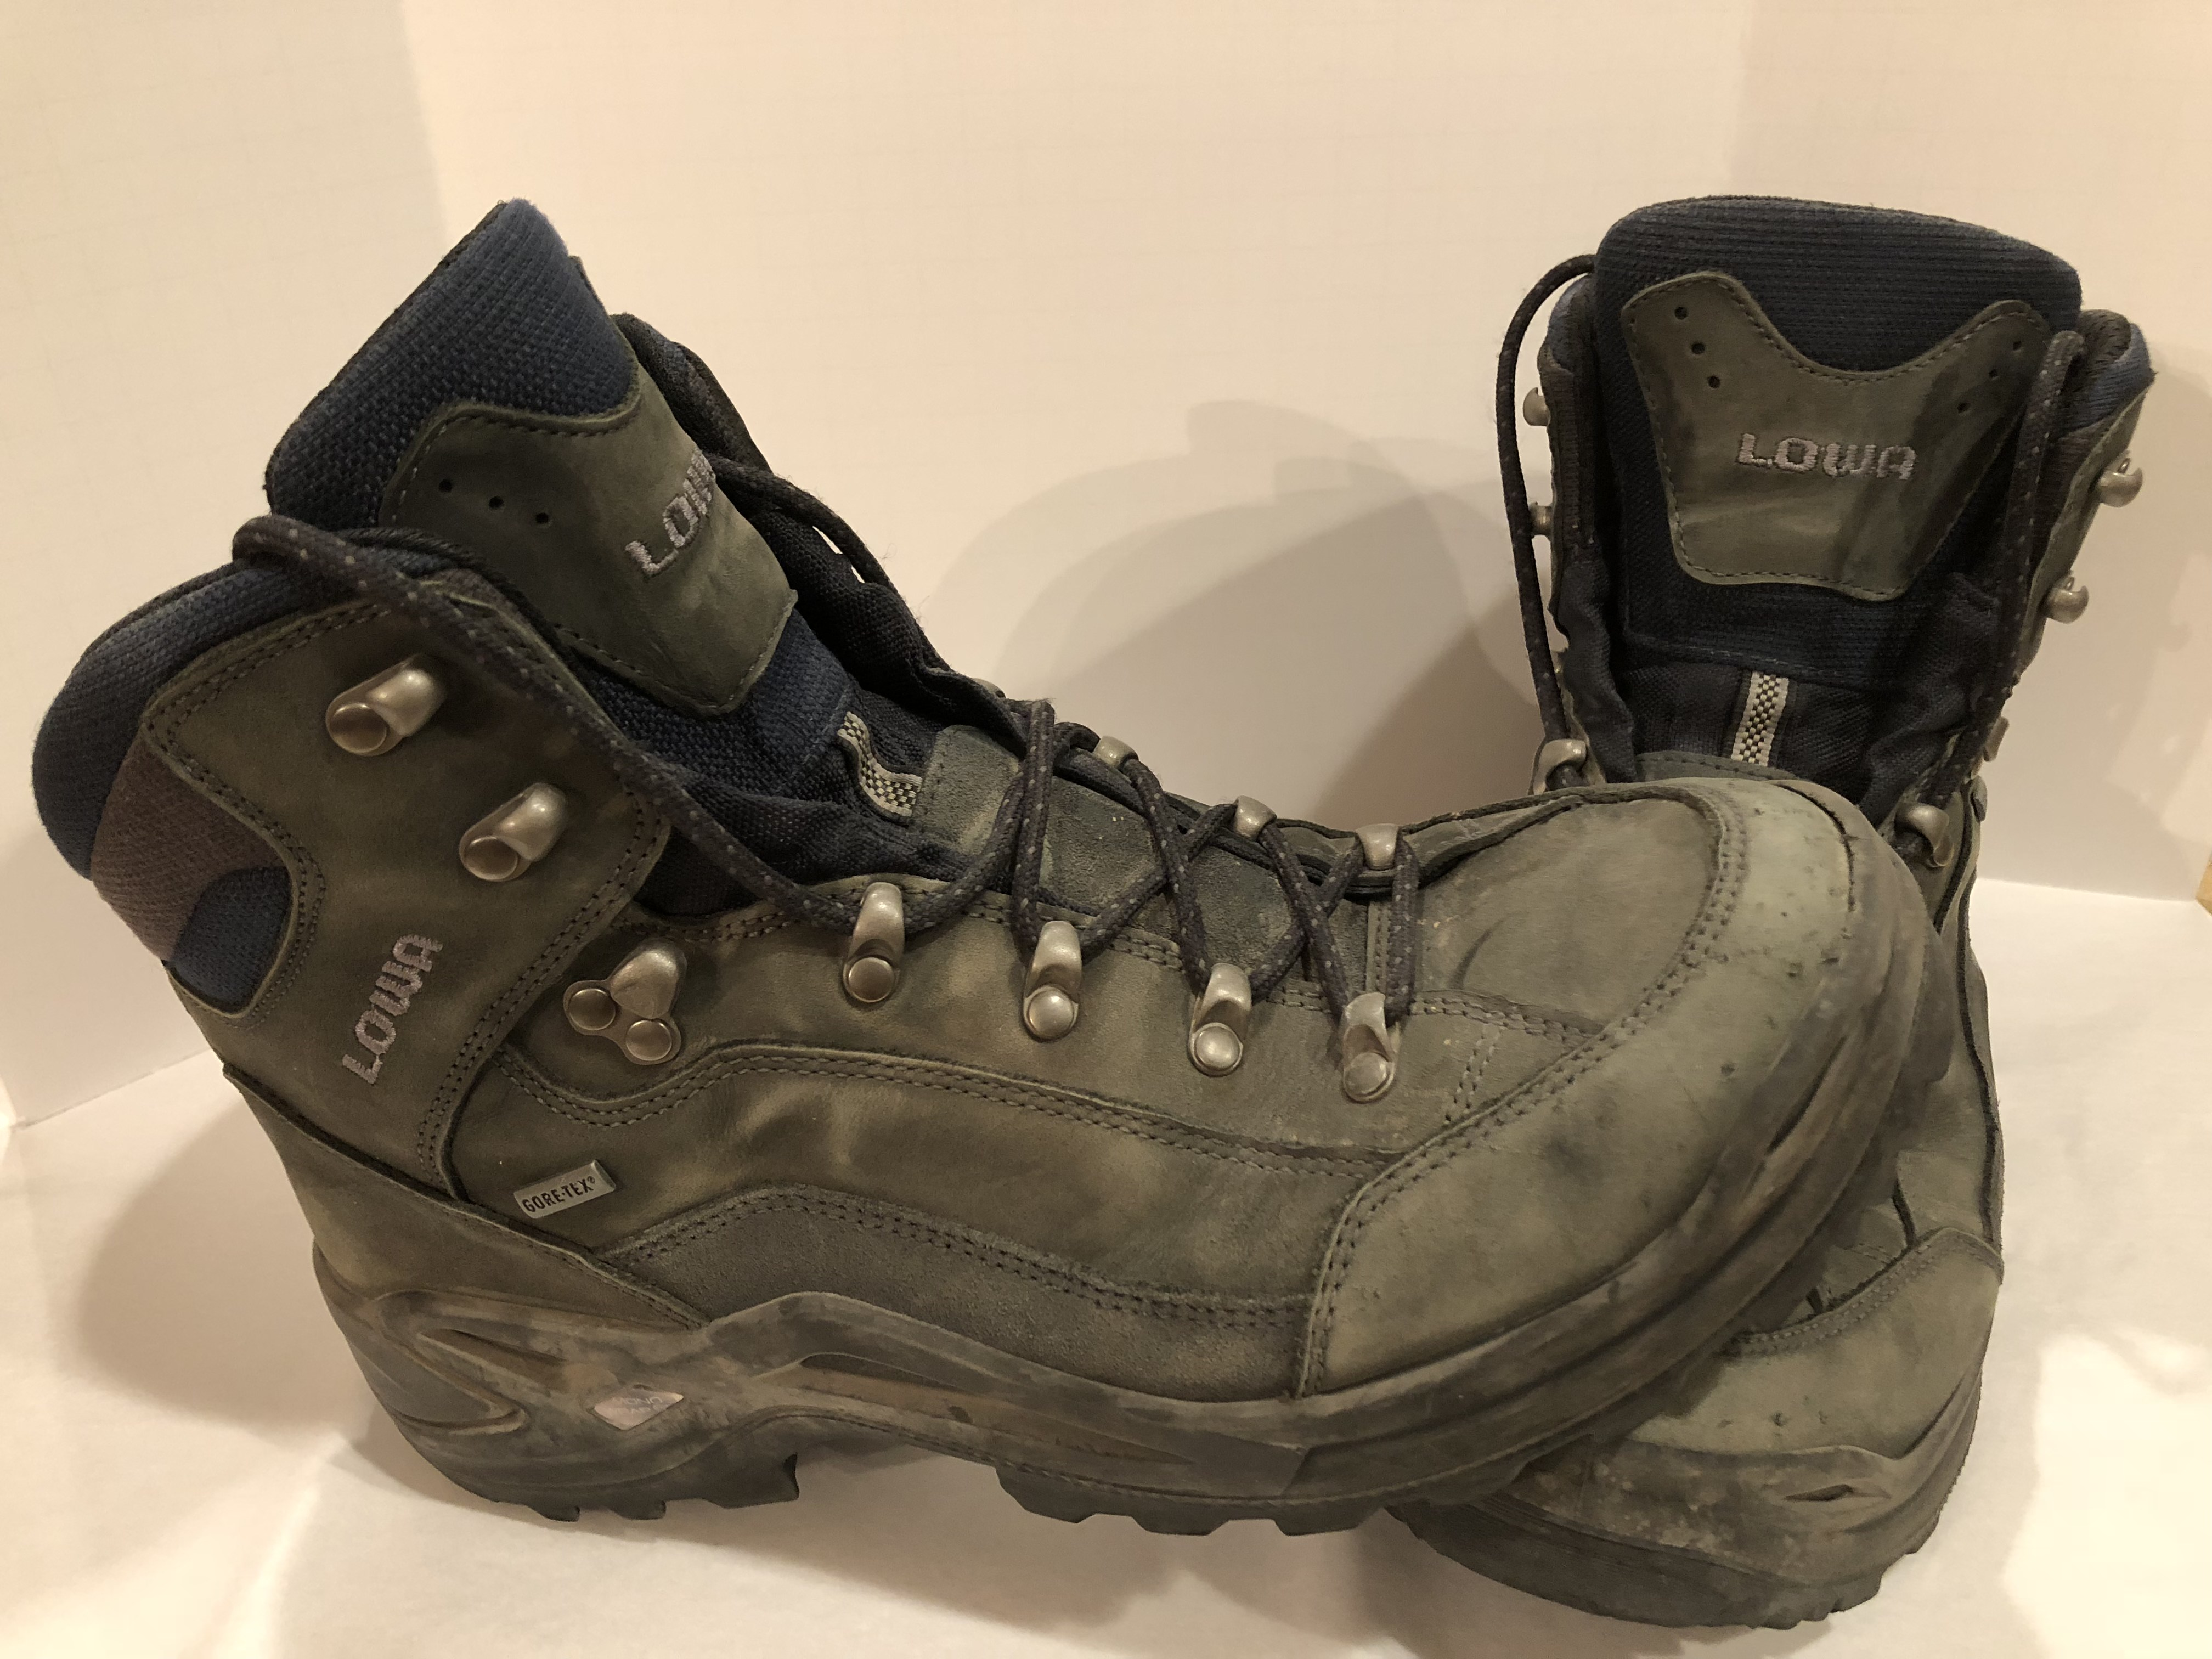 Lowa Boots Performance Footwear for any